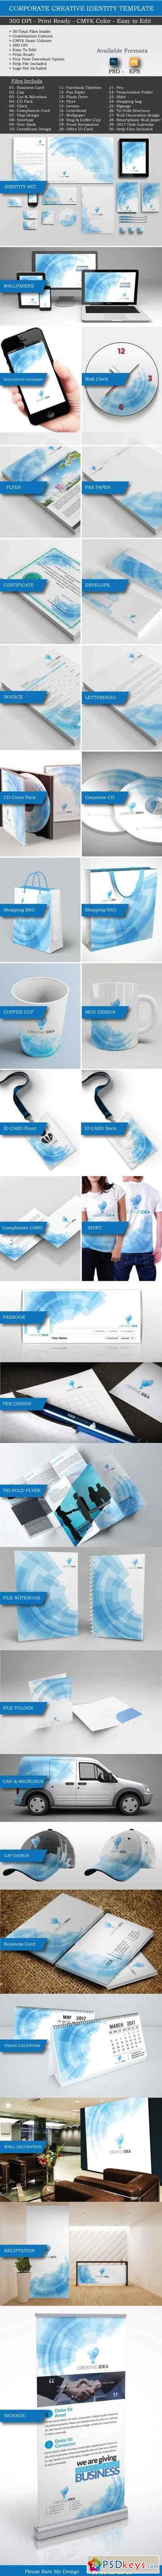 Creative Idea Corporate Identity set 669563